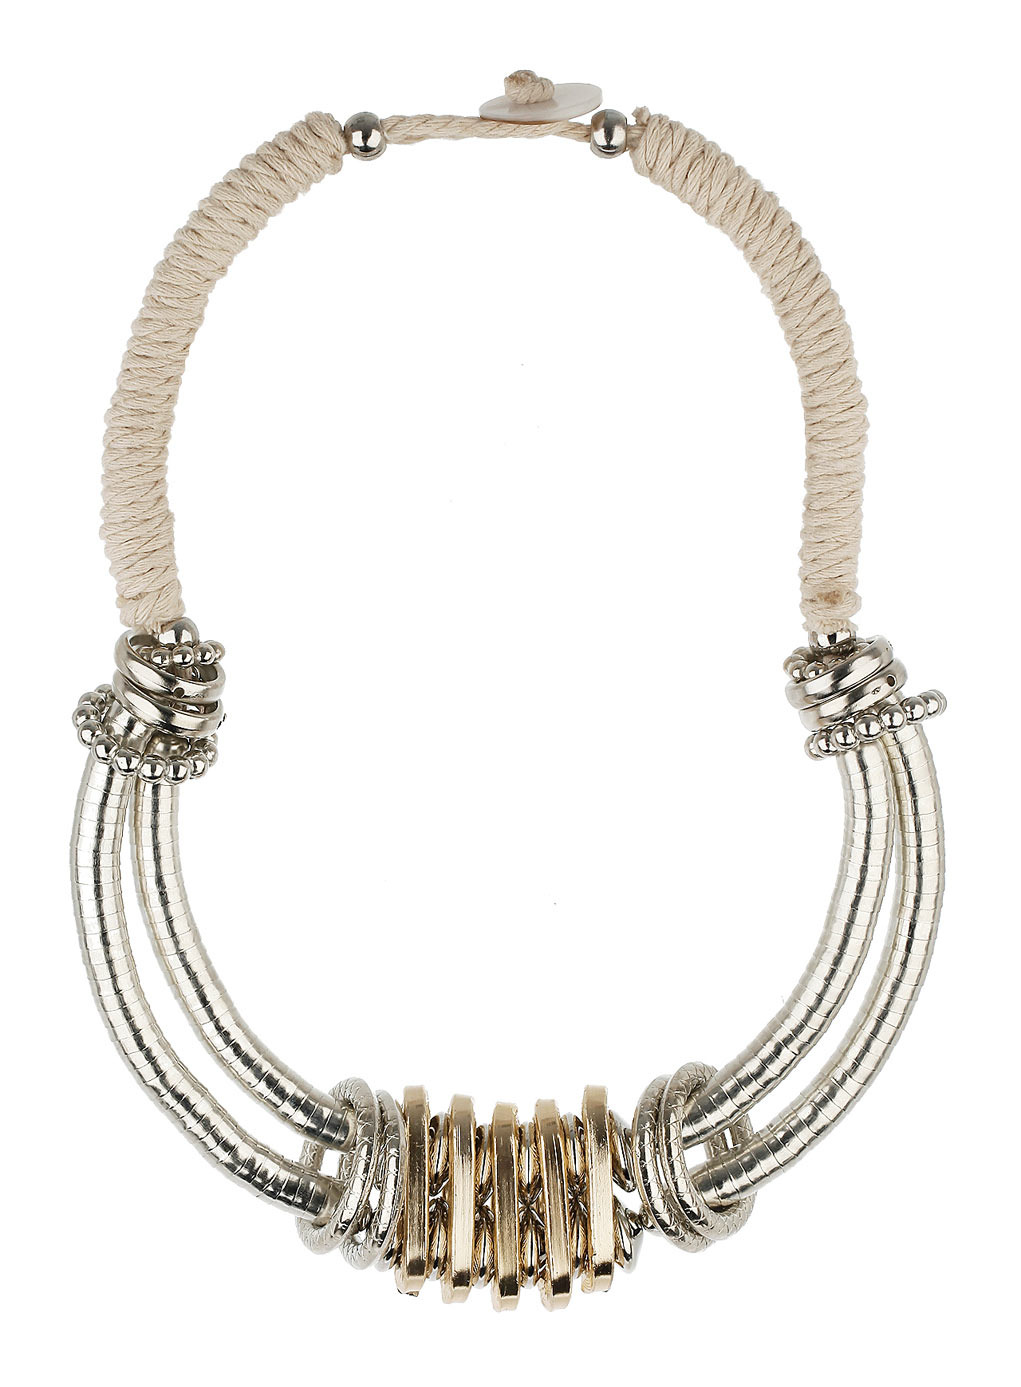 Statement Metal Caps Necklace - secondary colour: ivory/cream; predominant colour: silver; occasions: evening, occasion, creative work; length: short; size: large/oversized; material: chain/metal; finish: metallic; embellishment: chain/metal; style: bib/statement; season: s/s 2014